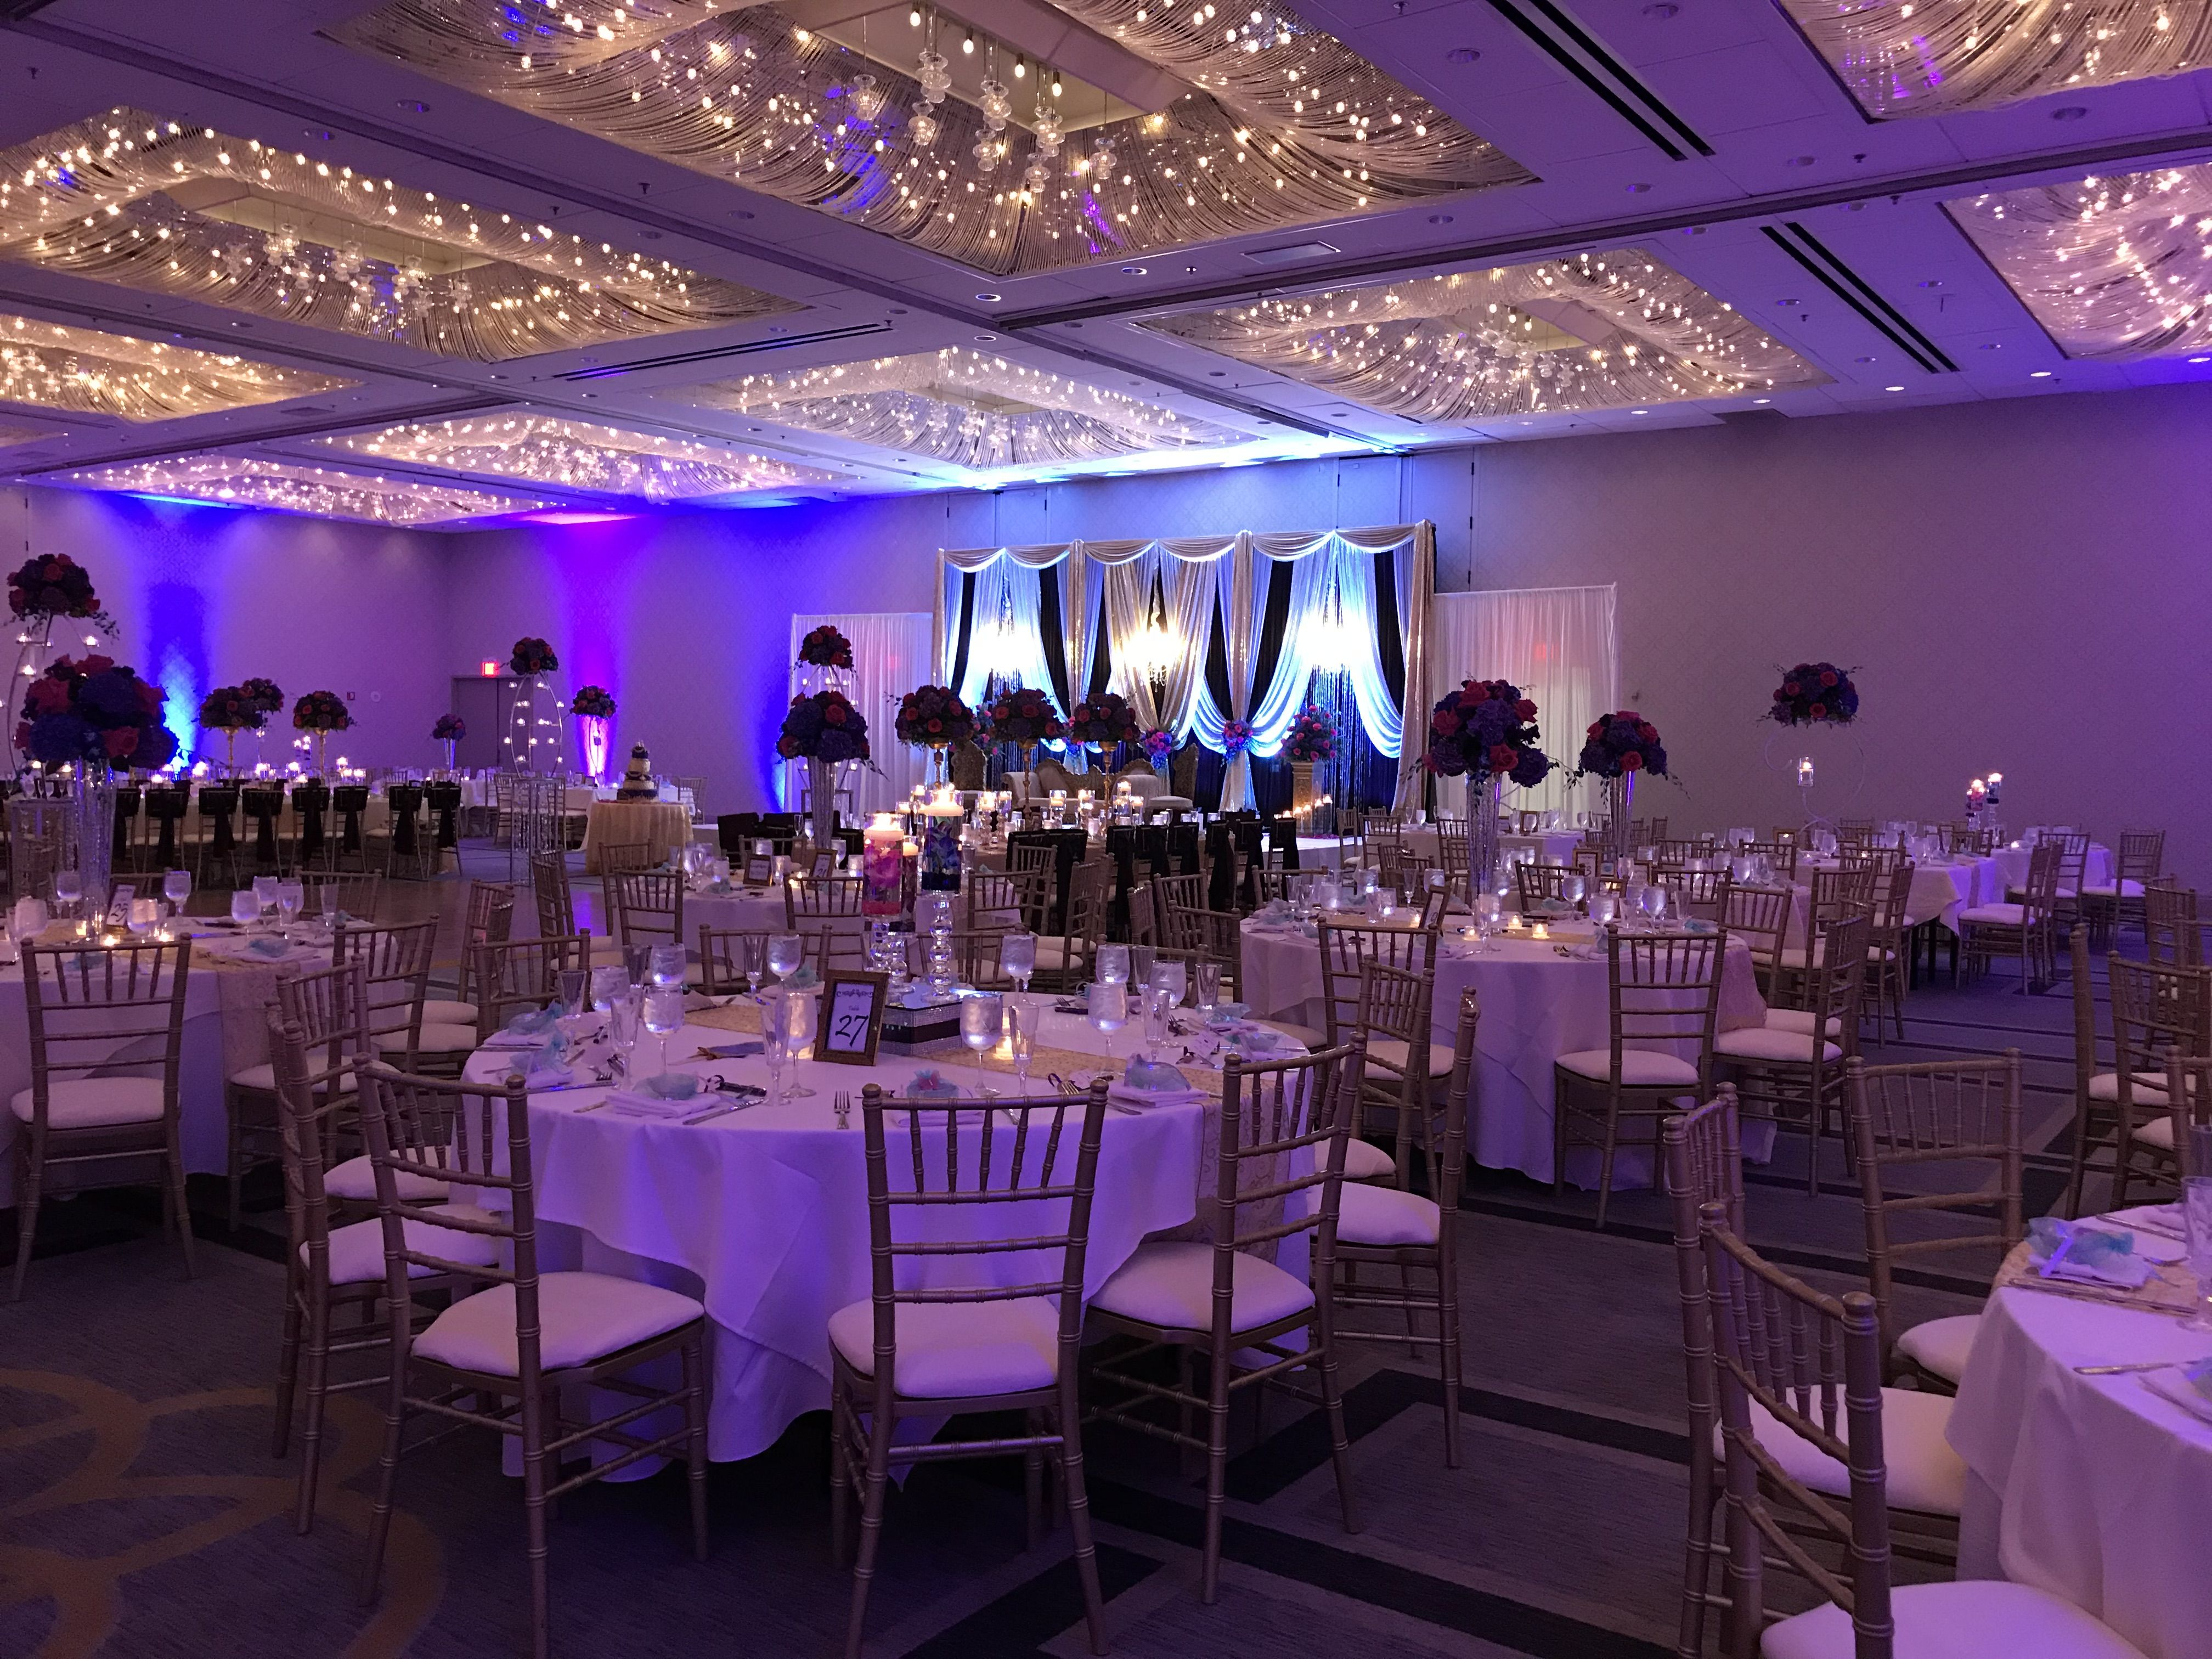 South Asian Wedding Reception At Doubletree Oak Brook Doubletreeoakbrook Southasianwedding Decor Company Professionalpartyplanners